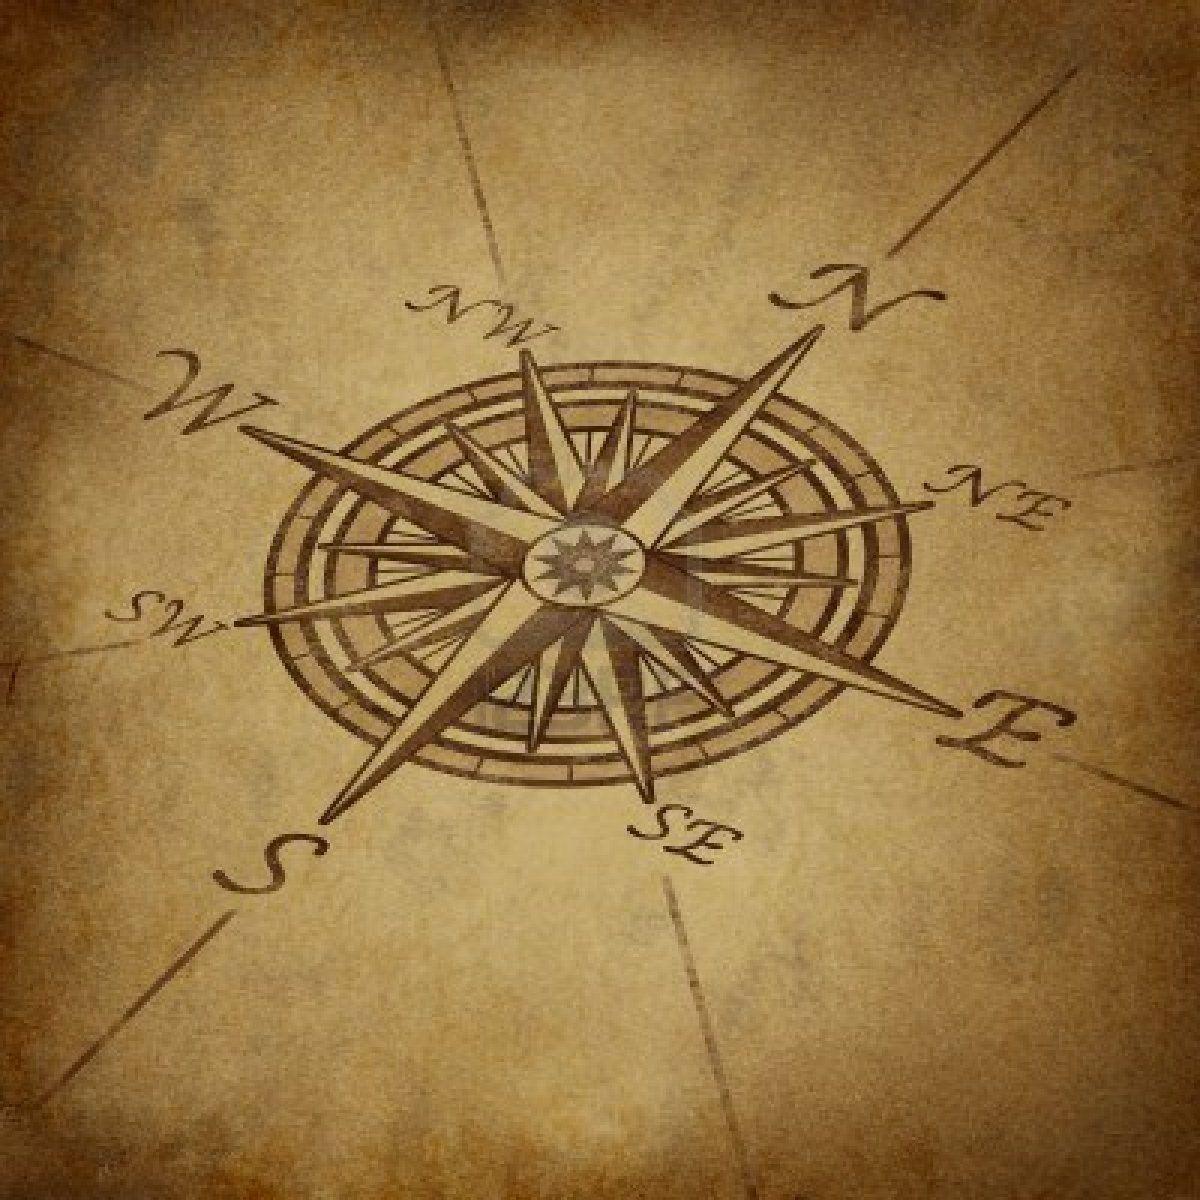 Compass Rose In Perspective With Old Vintage Grunge Texture Representing Vintage Compass Tattoo Compass Tattoo Compass Rose Tattoo